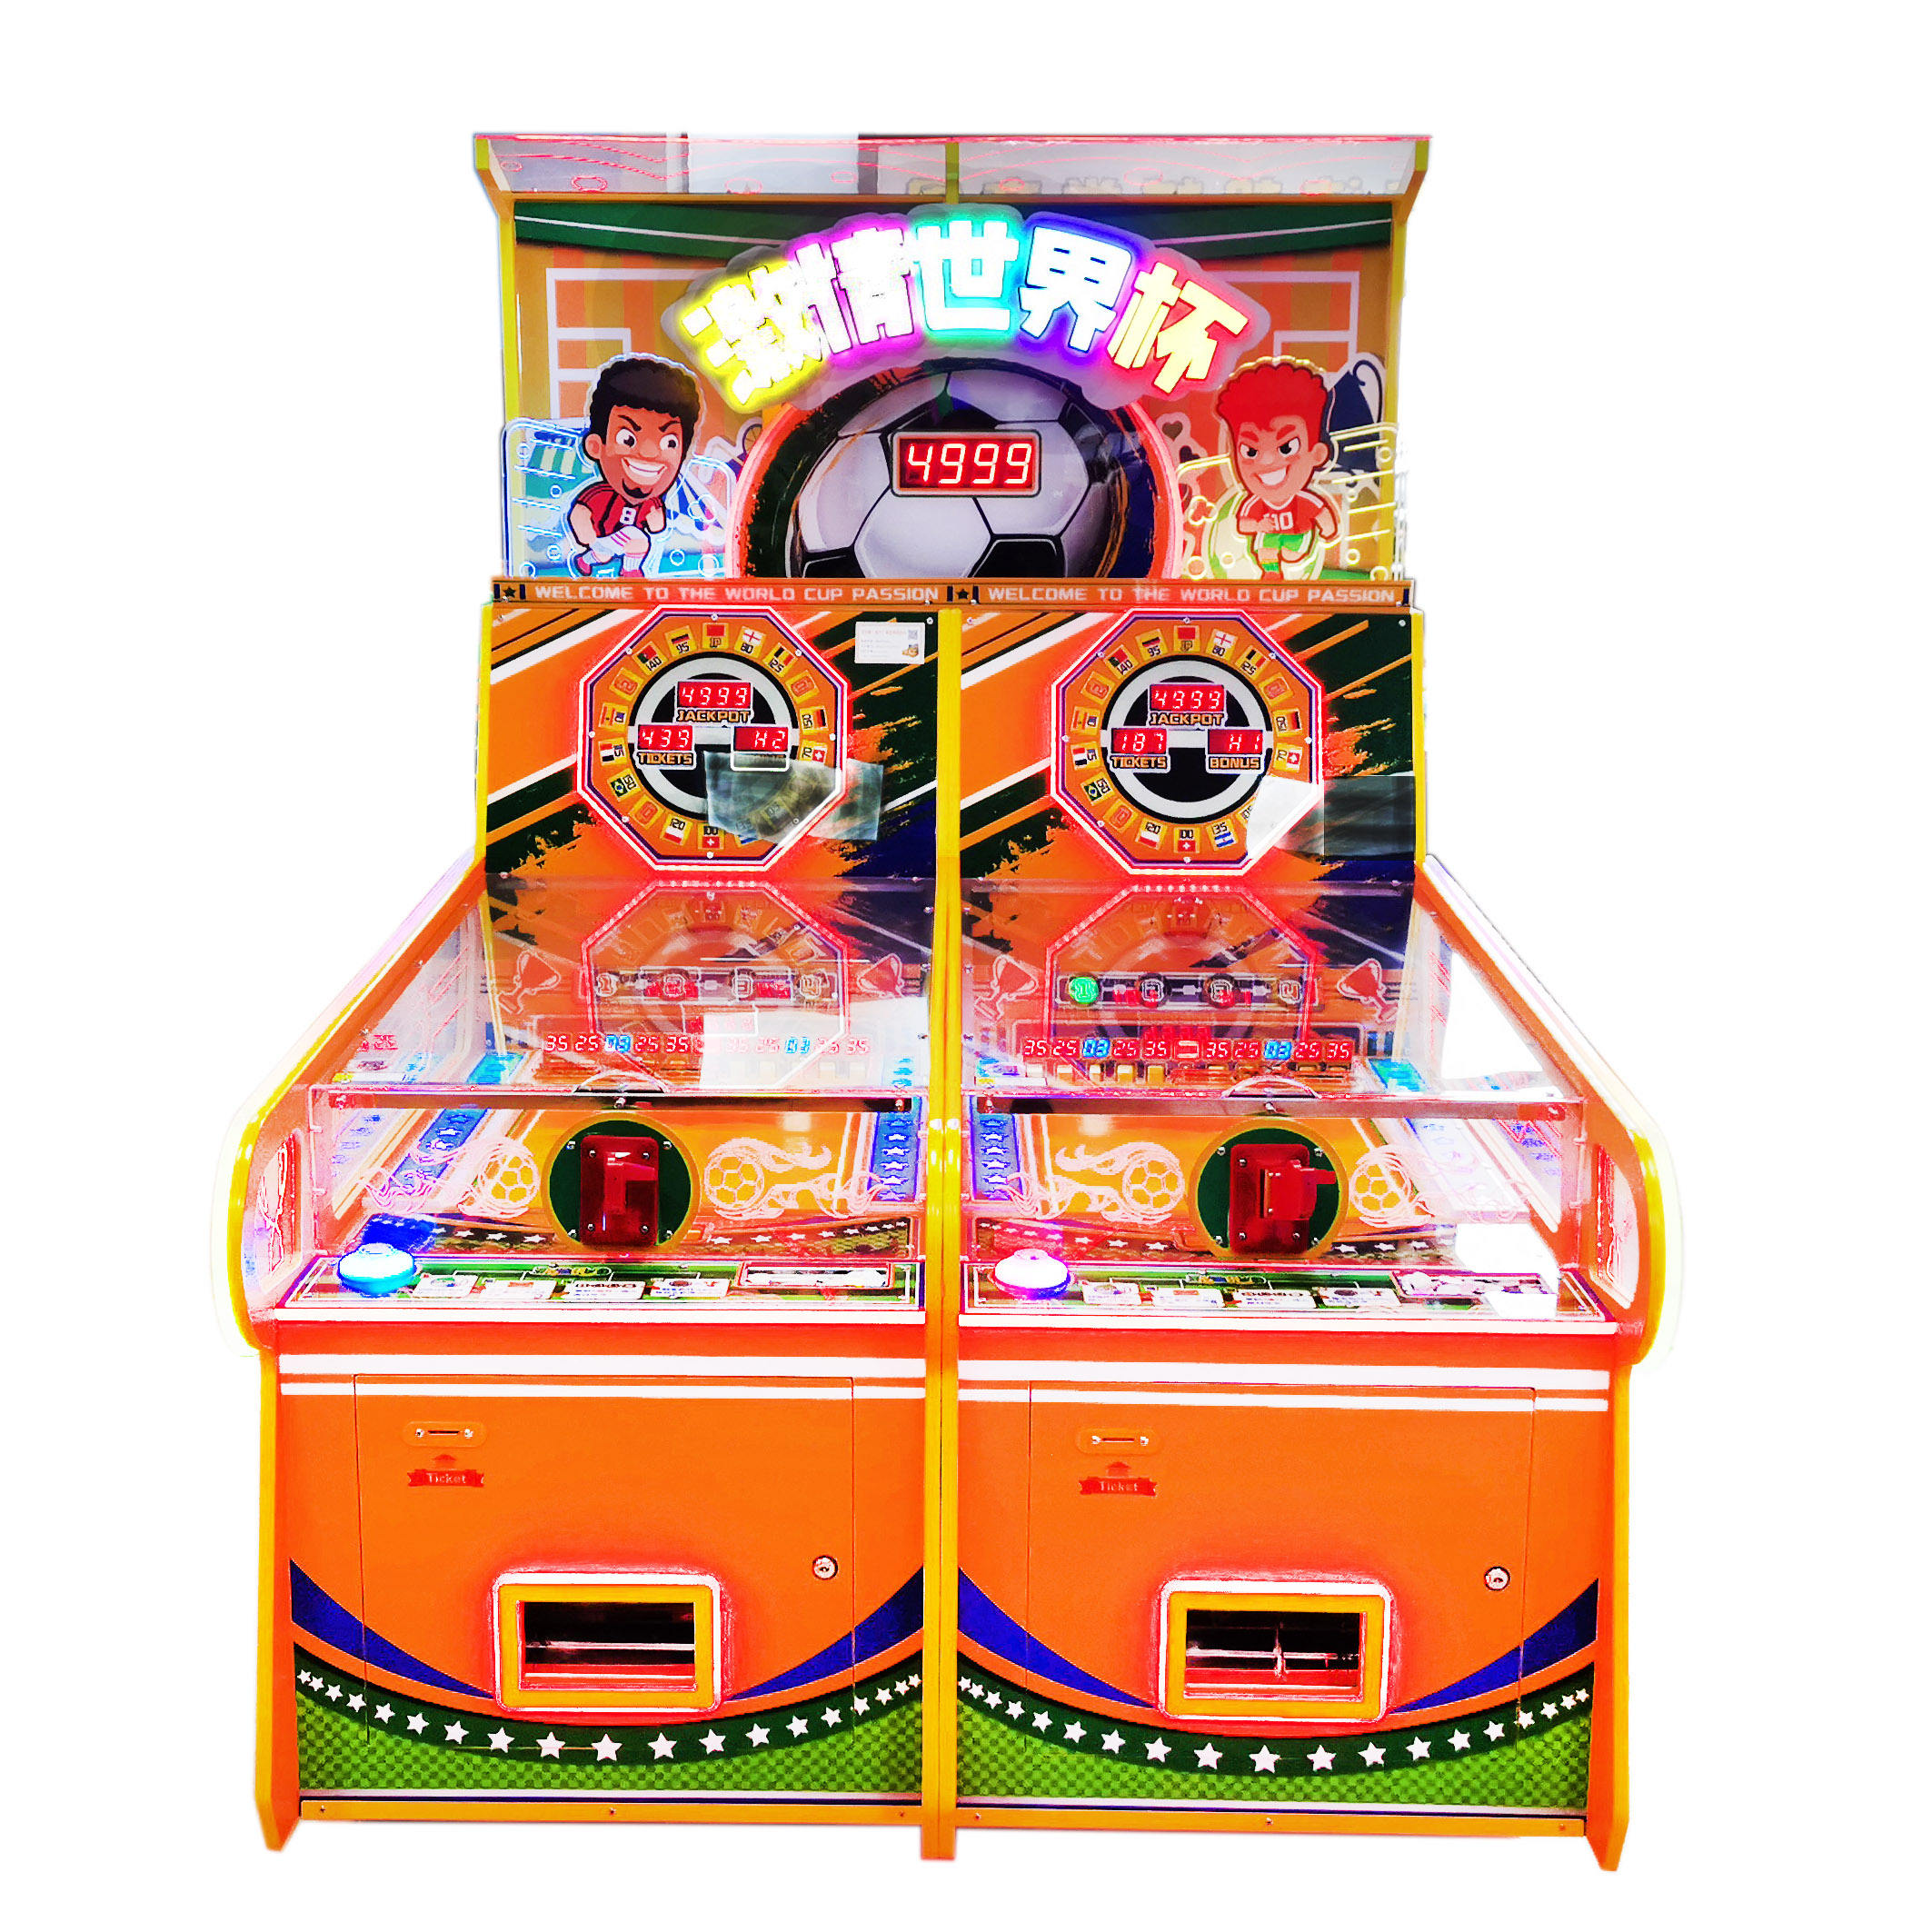 PalmFun Passion World Cup 2 players classic arcade games redemption machines machine game With Best After-Sale Service